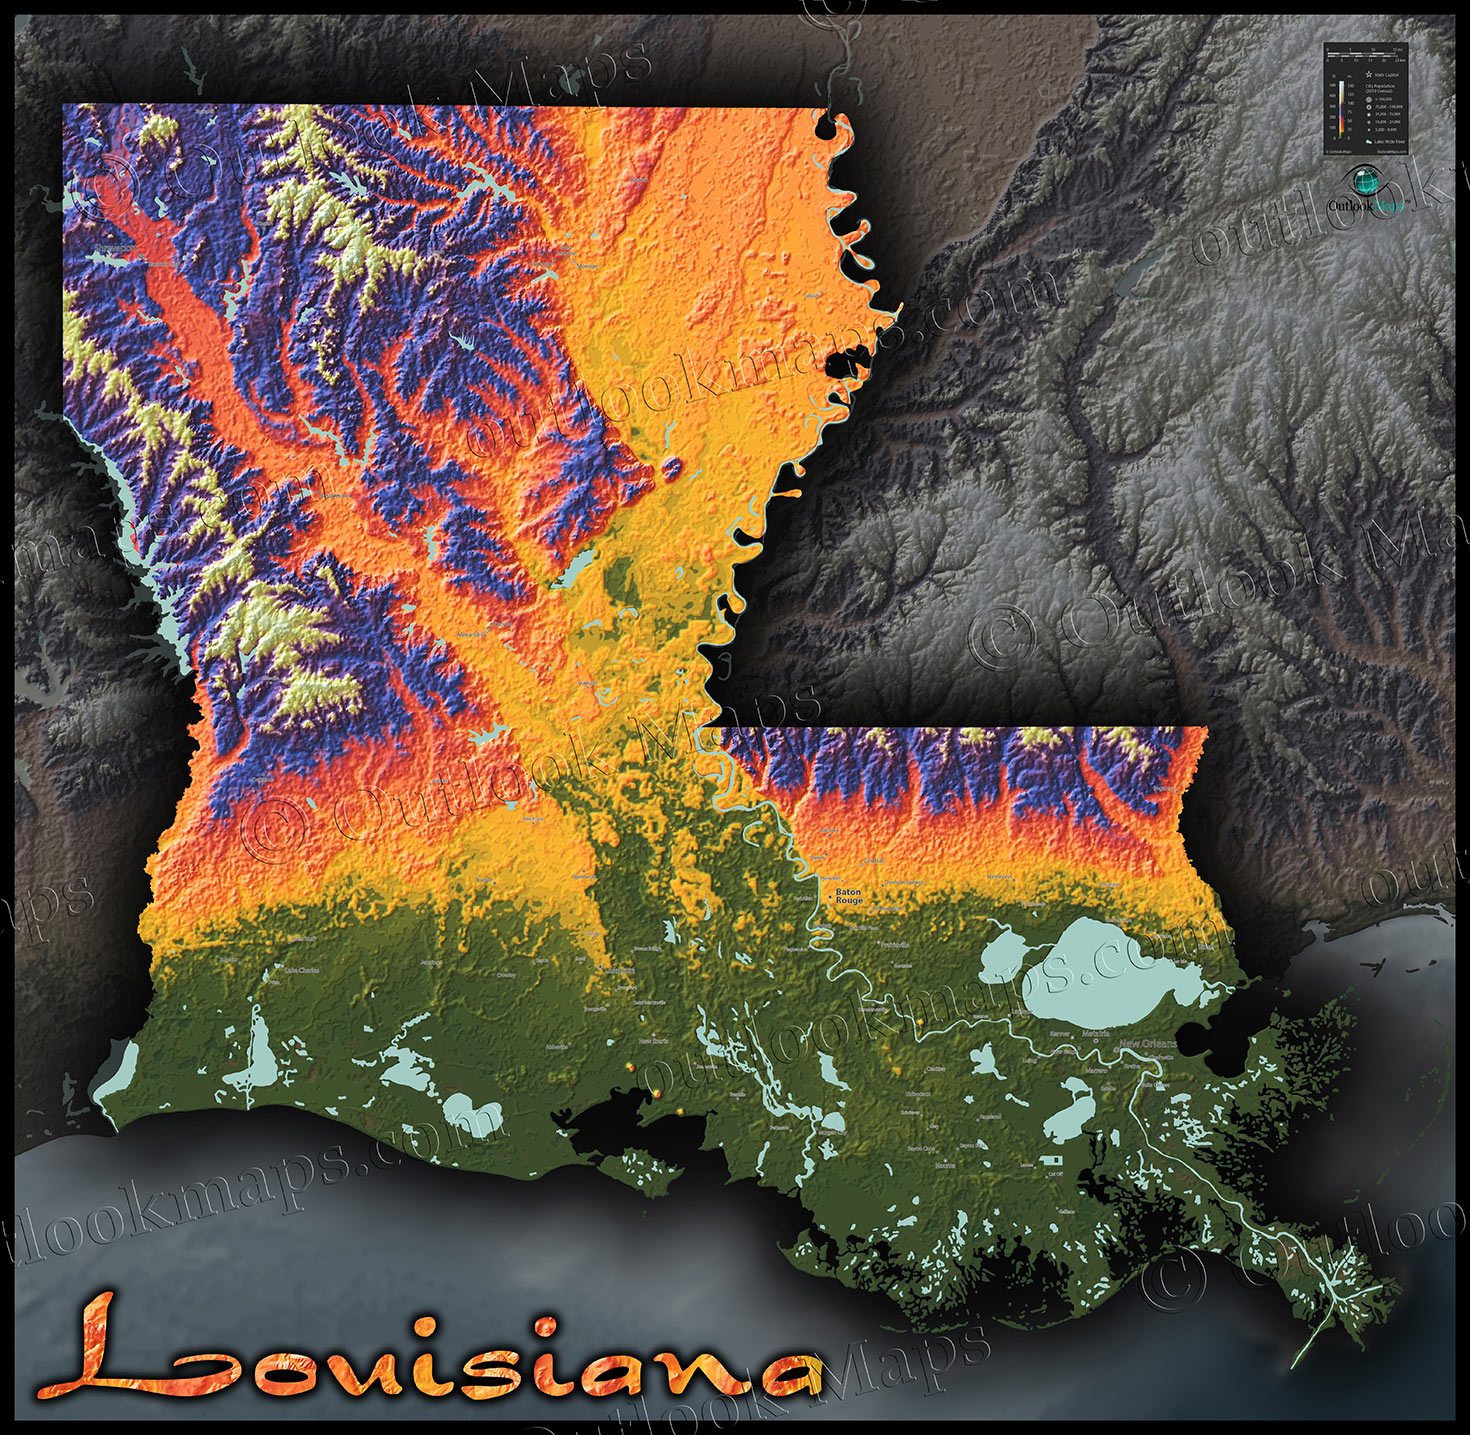 Louisiana Physical Map Colorful D Terrain Topography - Loisiana map